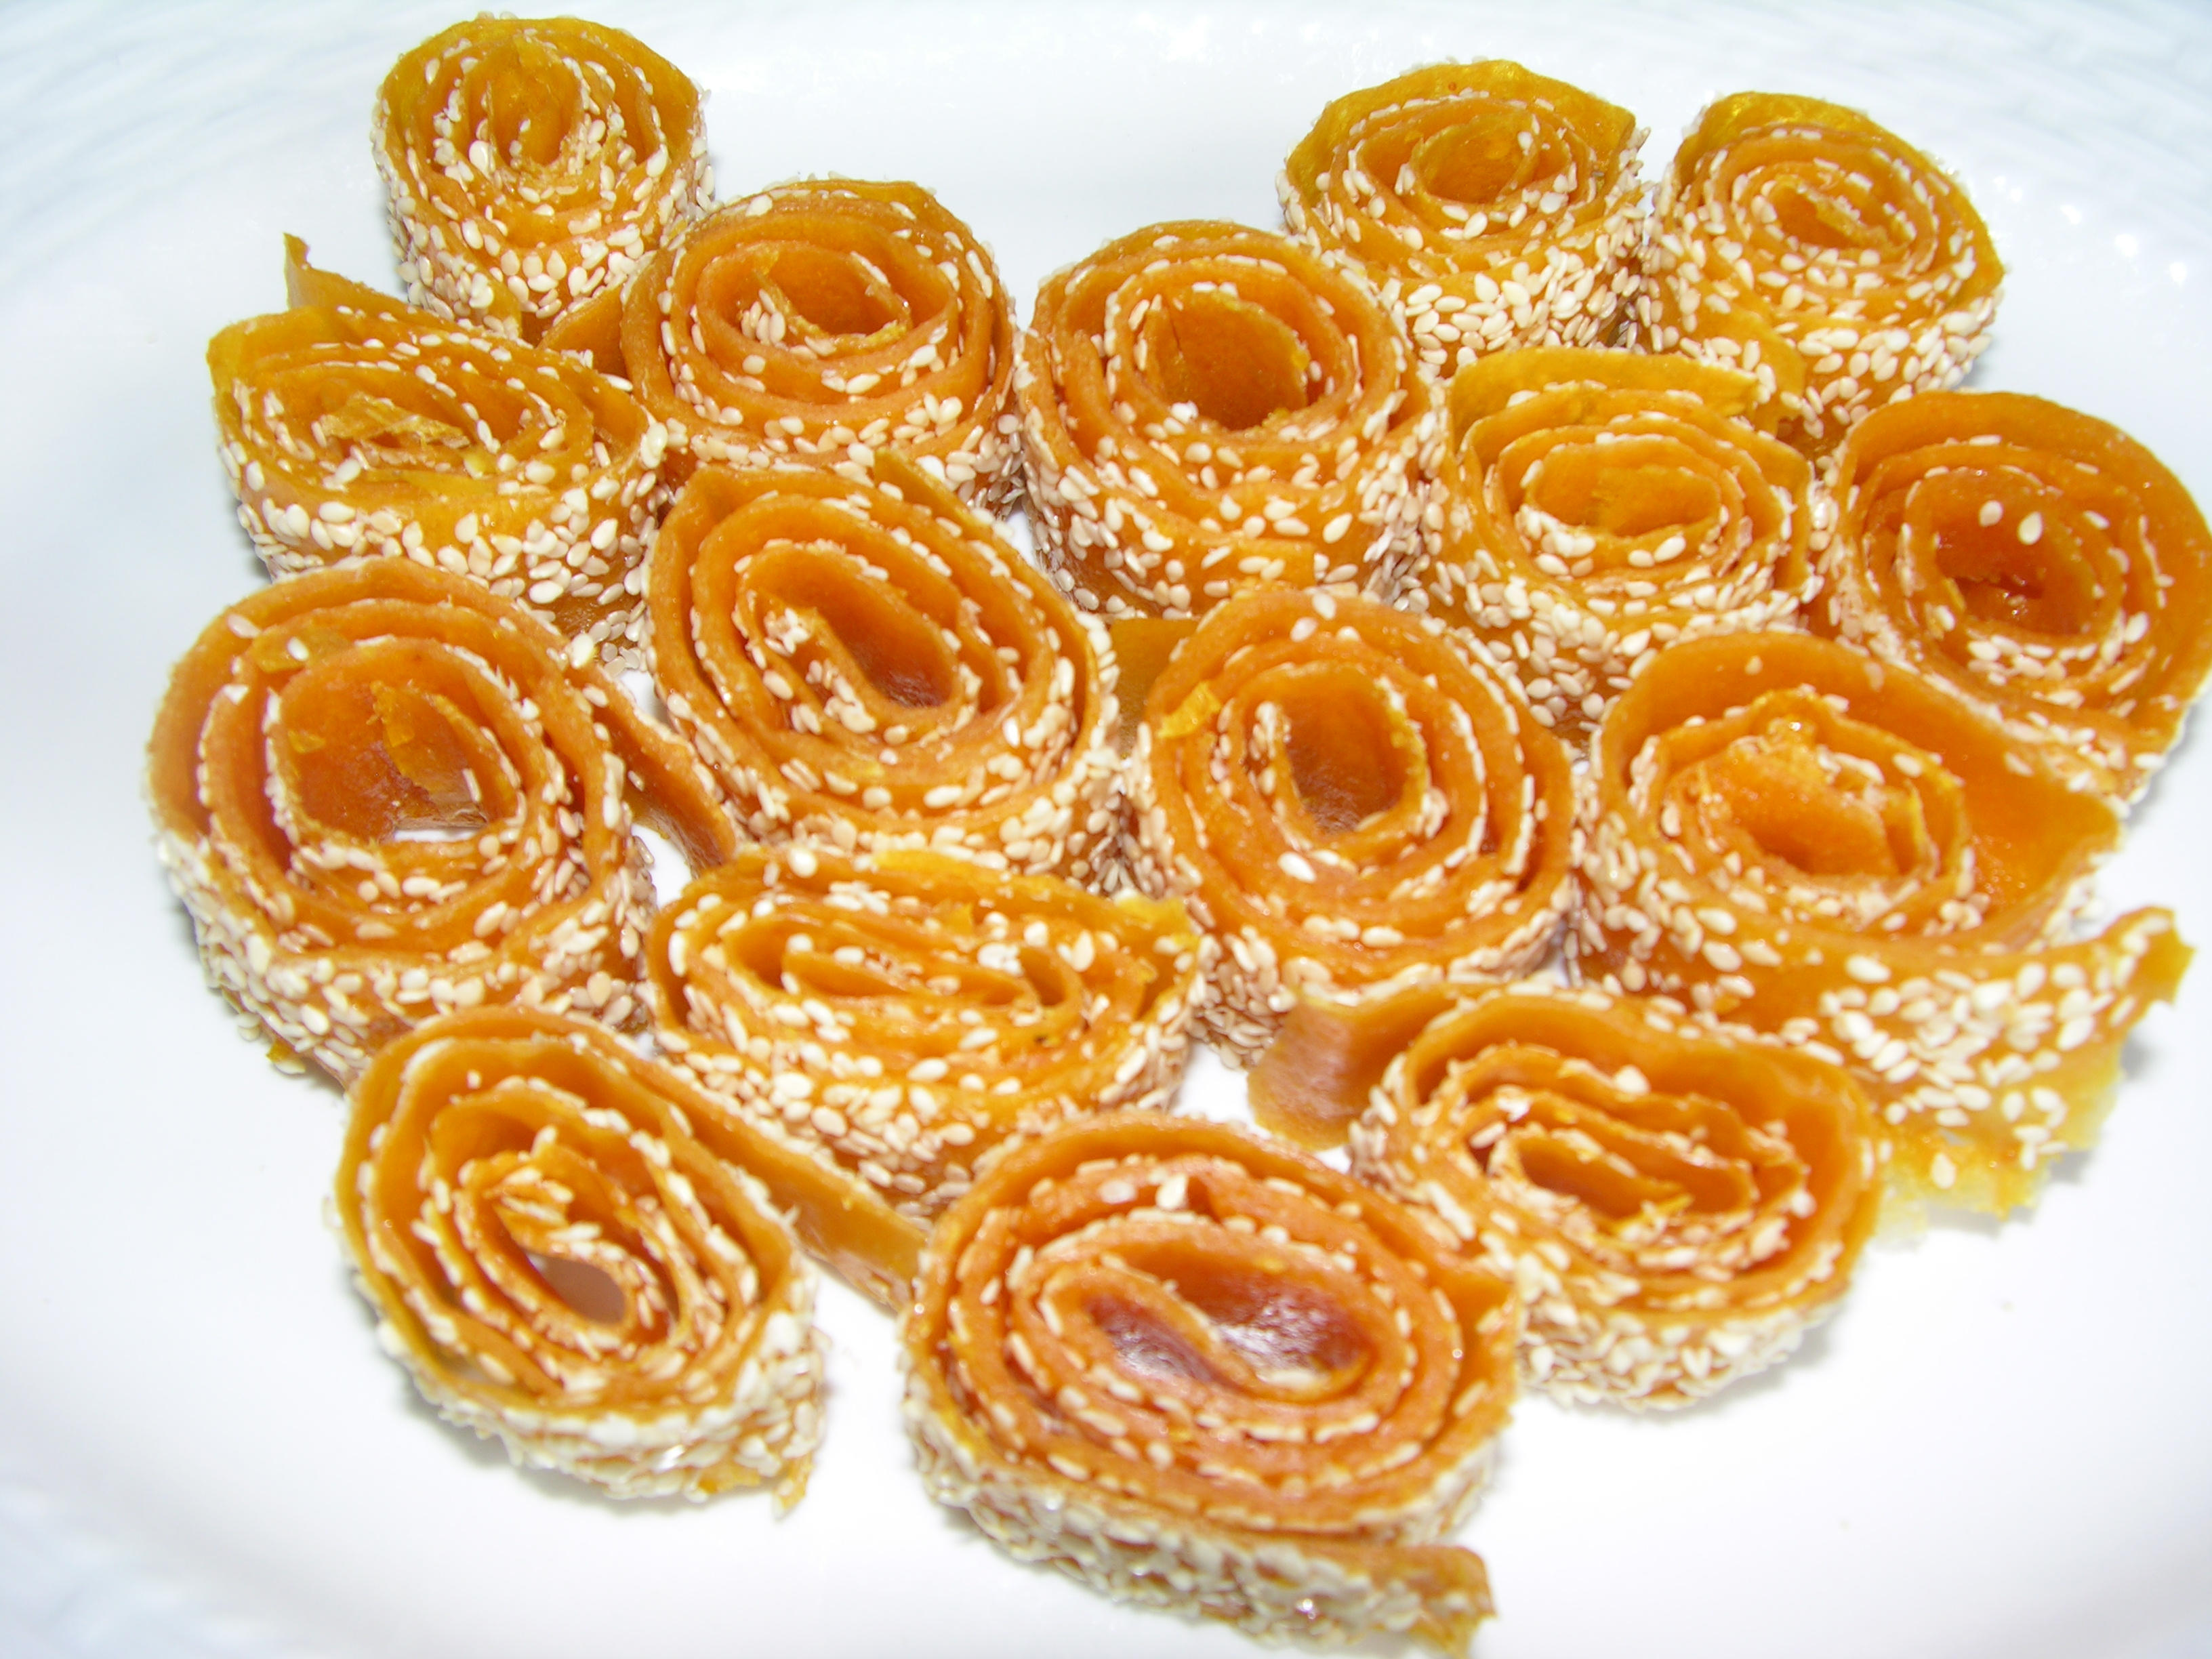 Sesame candy rolls and strings